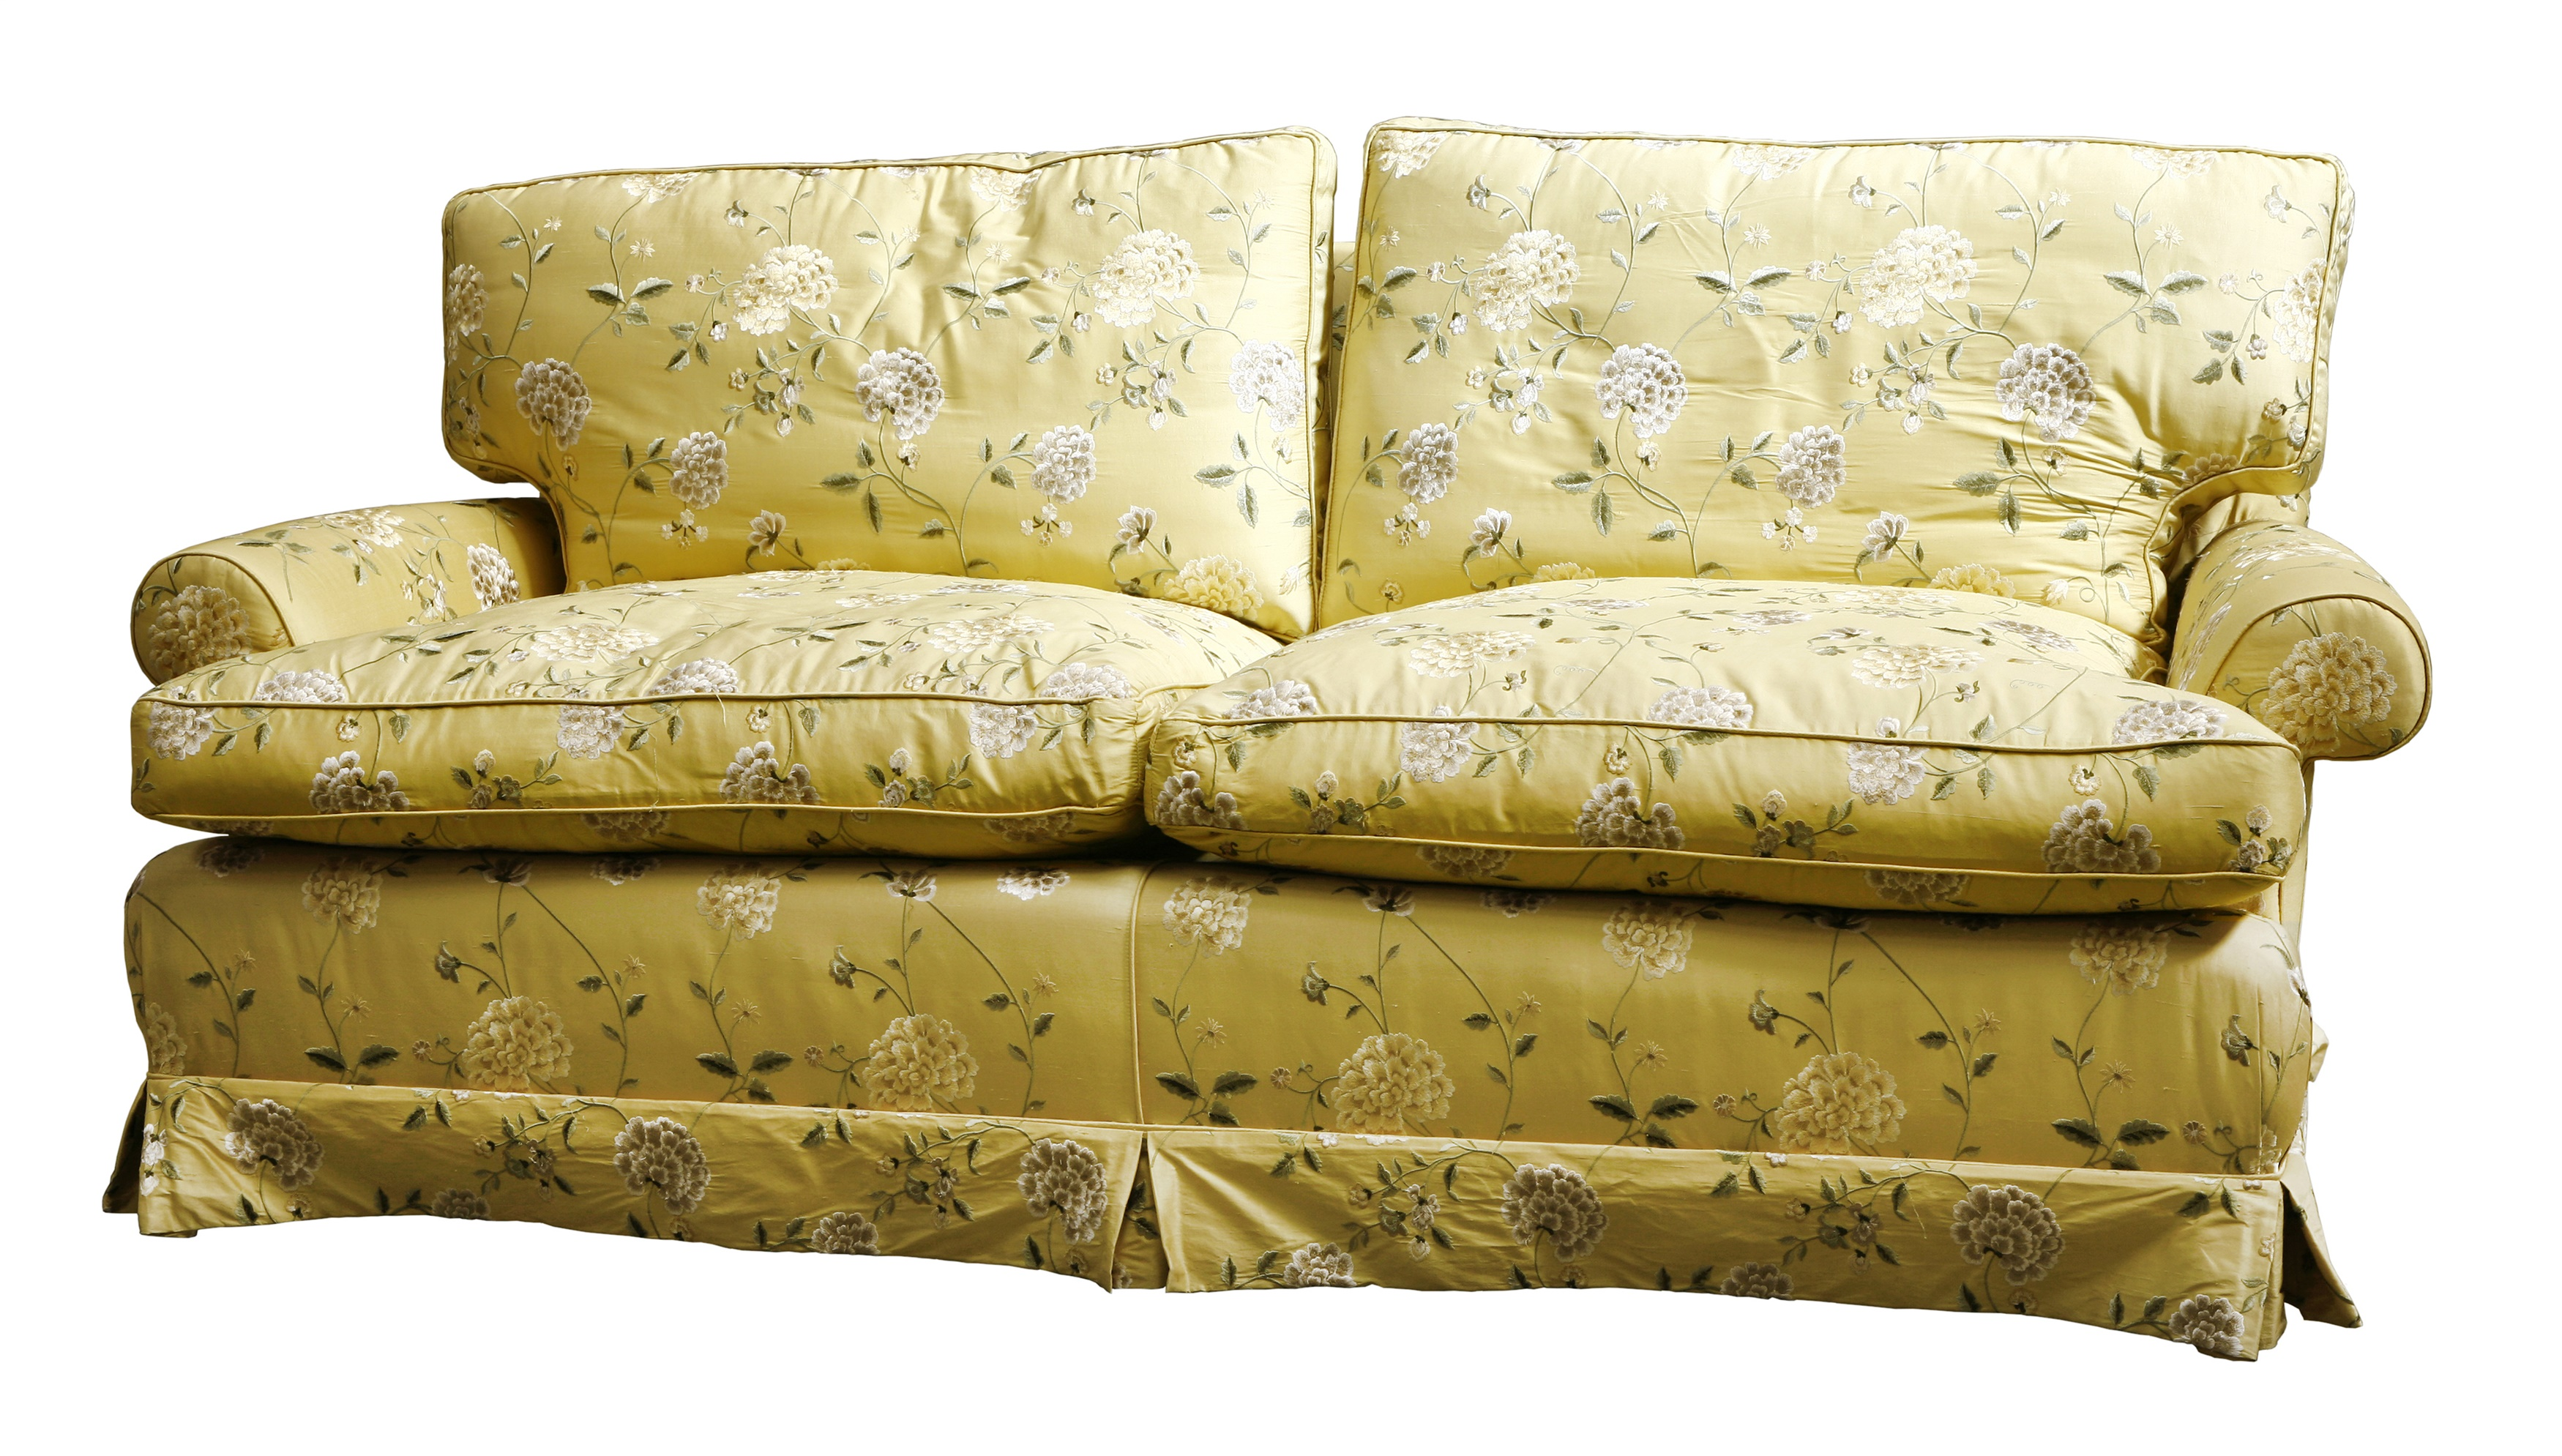 A modern silk upholstered settee, by Colefax & Fowler